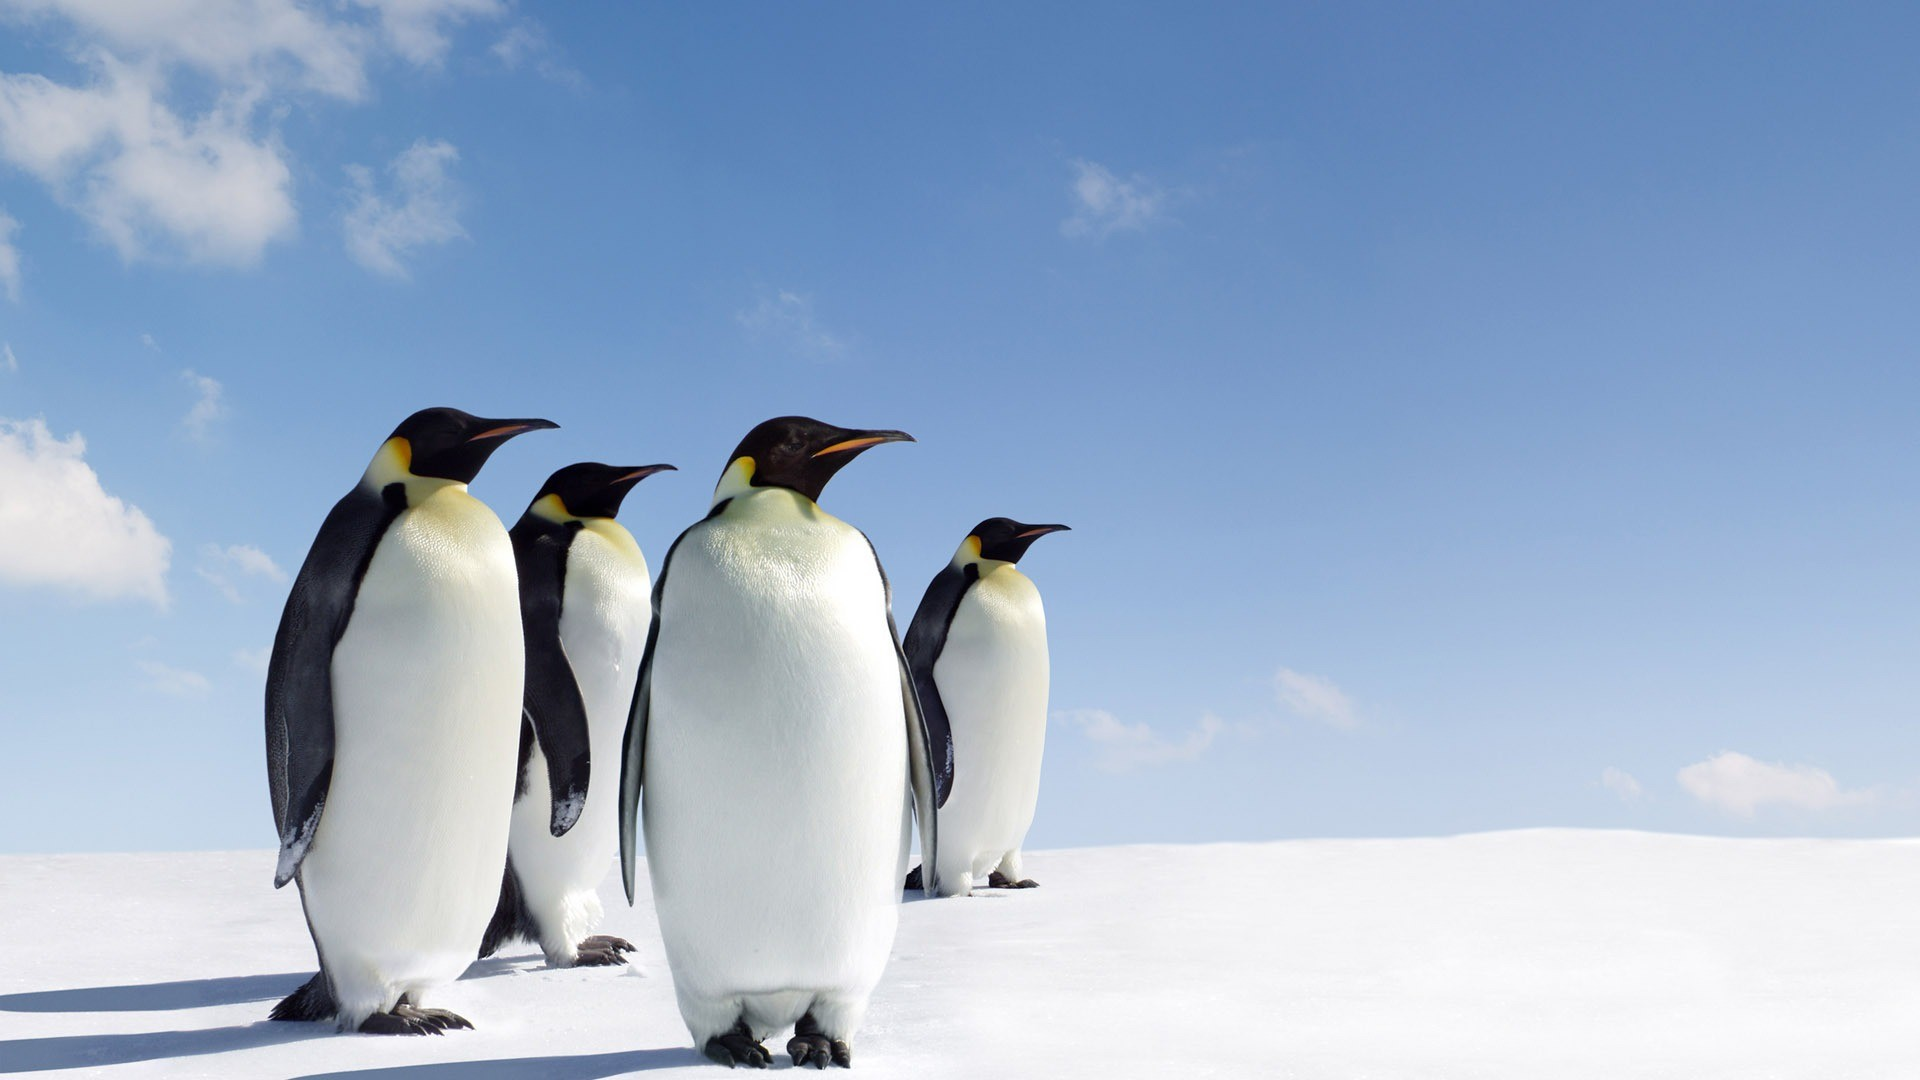 Excellence Images of Penguin Wallpaper HD